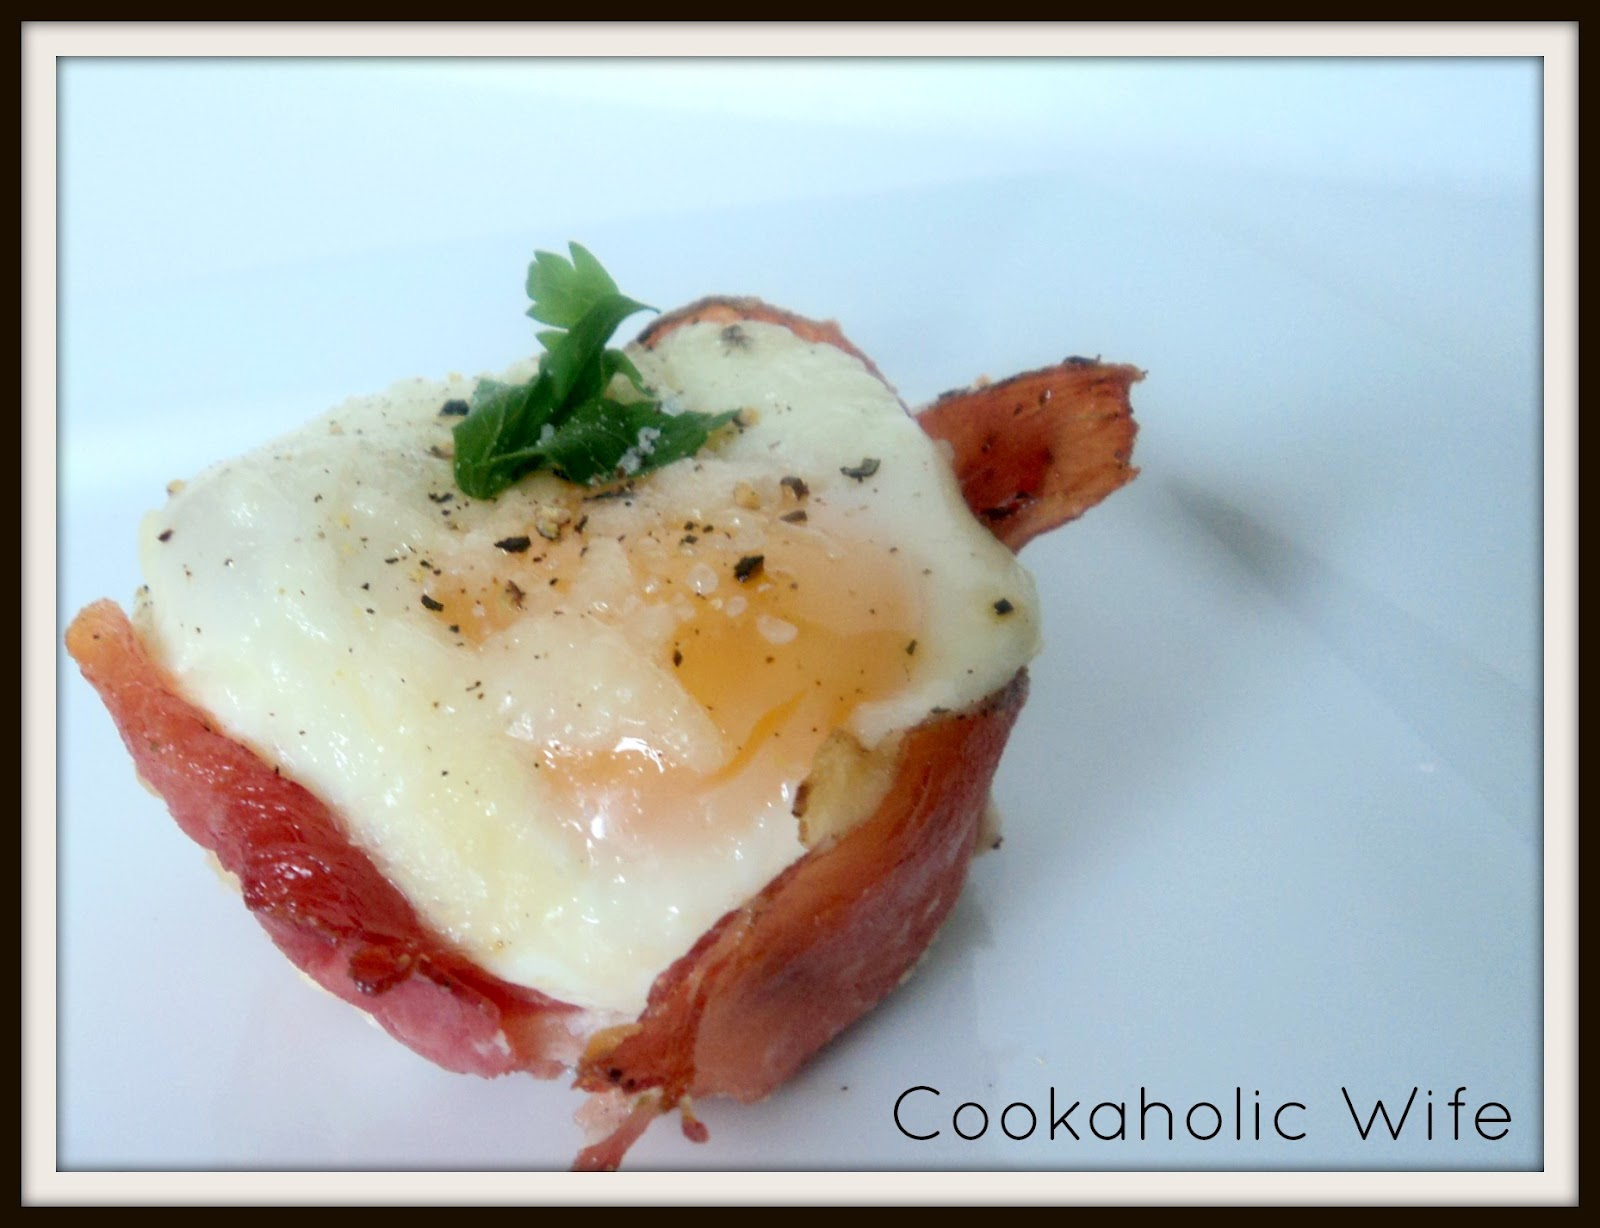 Cookaholic Wife: Prosciutto Egg Cups